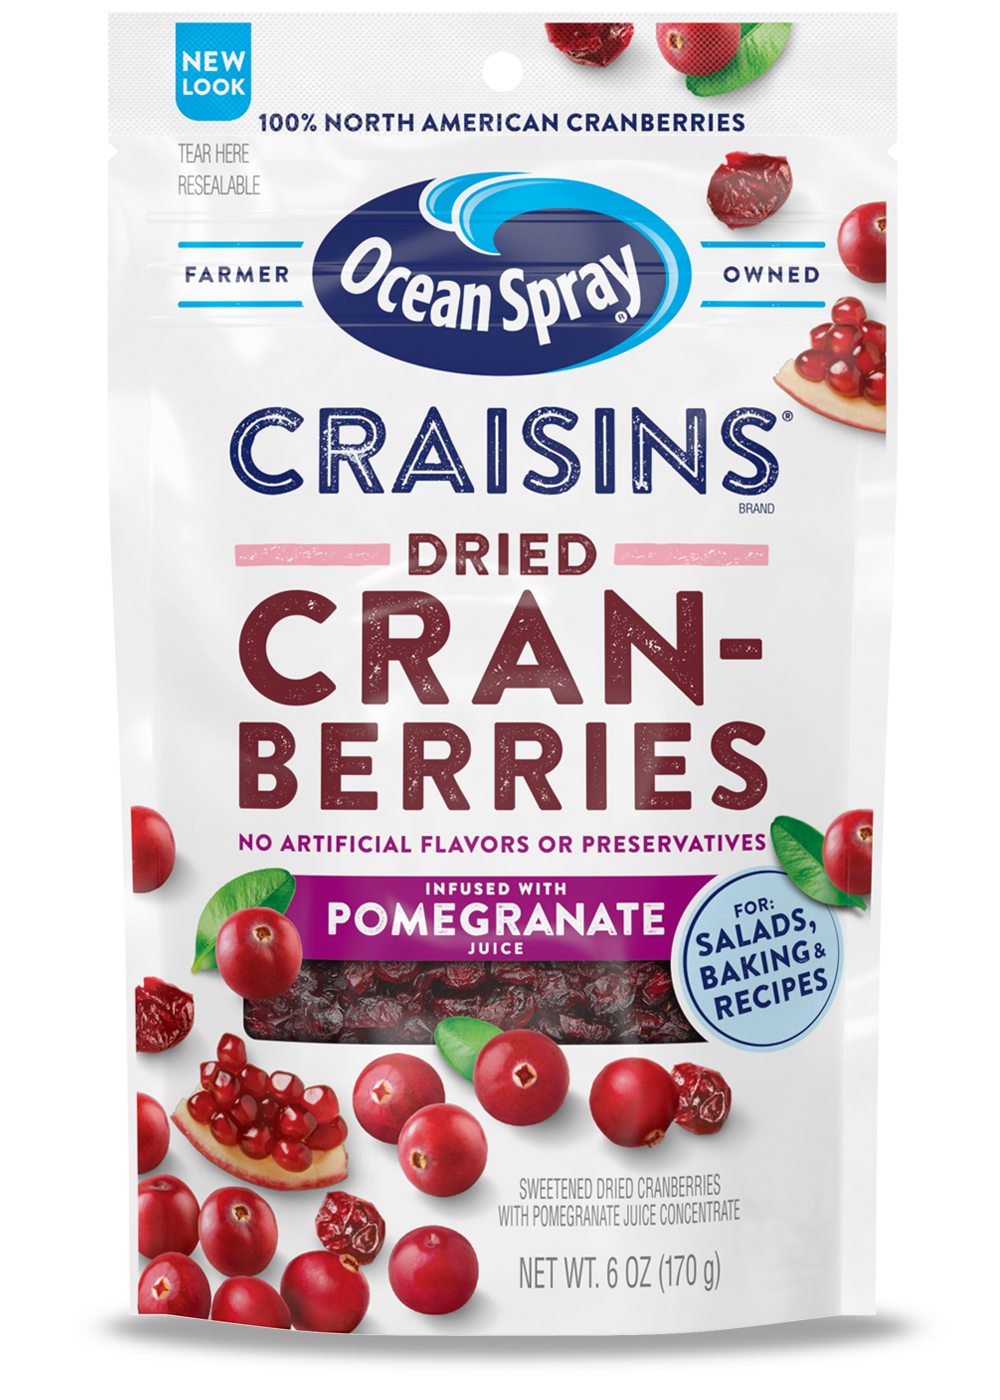 Craisins® Dried Cranberries Pomegranate Juice Infused